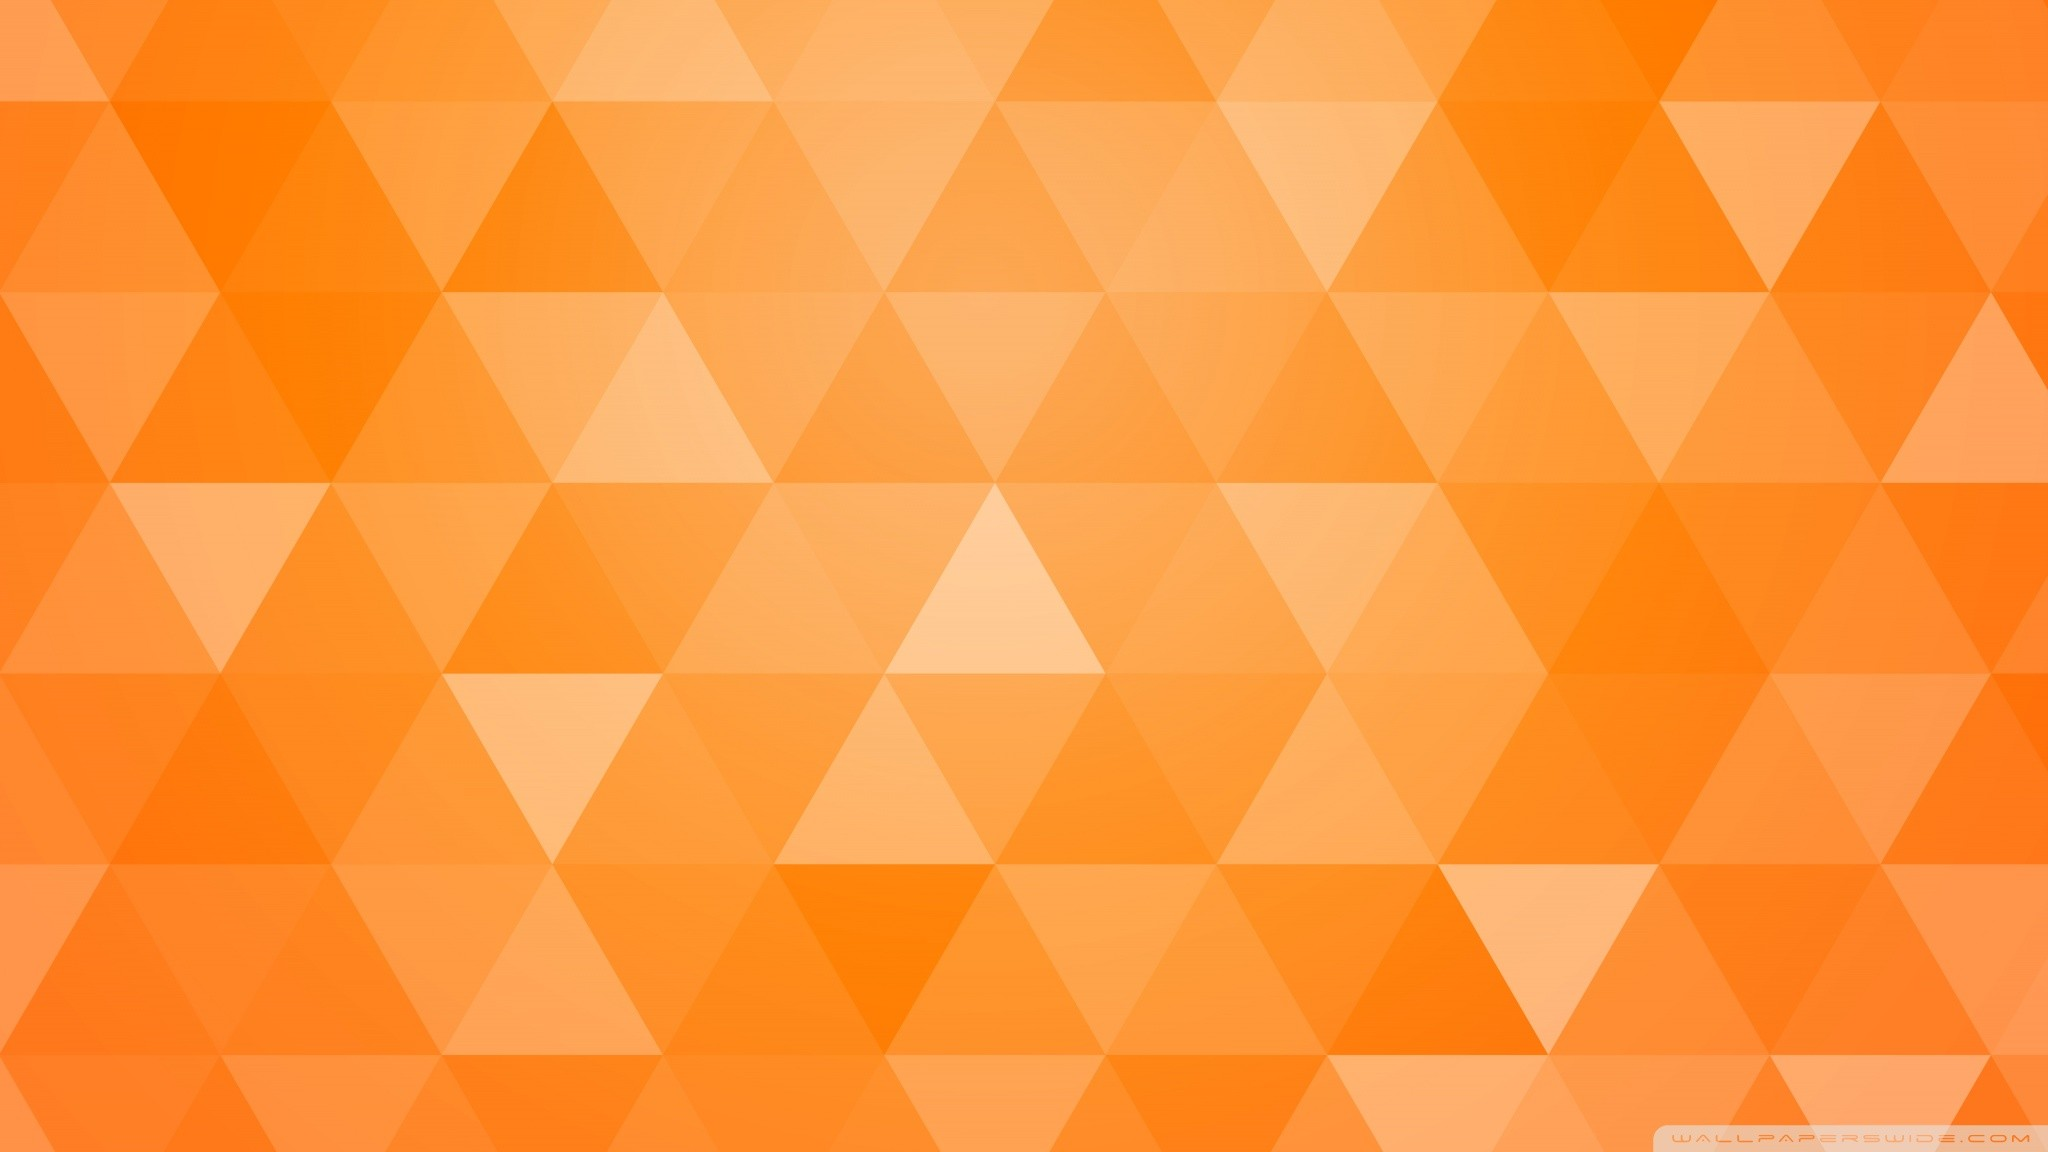 Orange Geometric Wallpaper 43 images 2048x1152